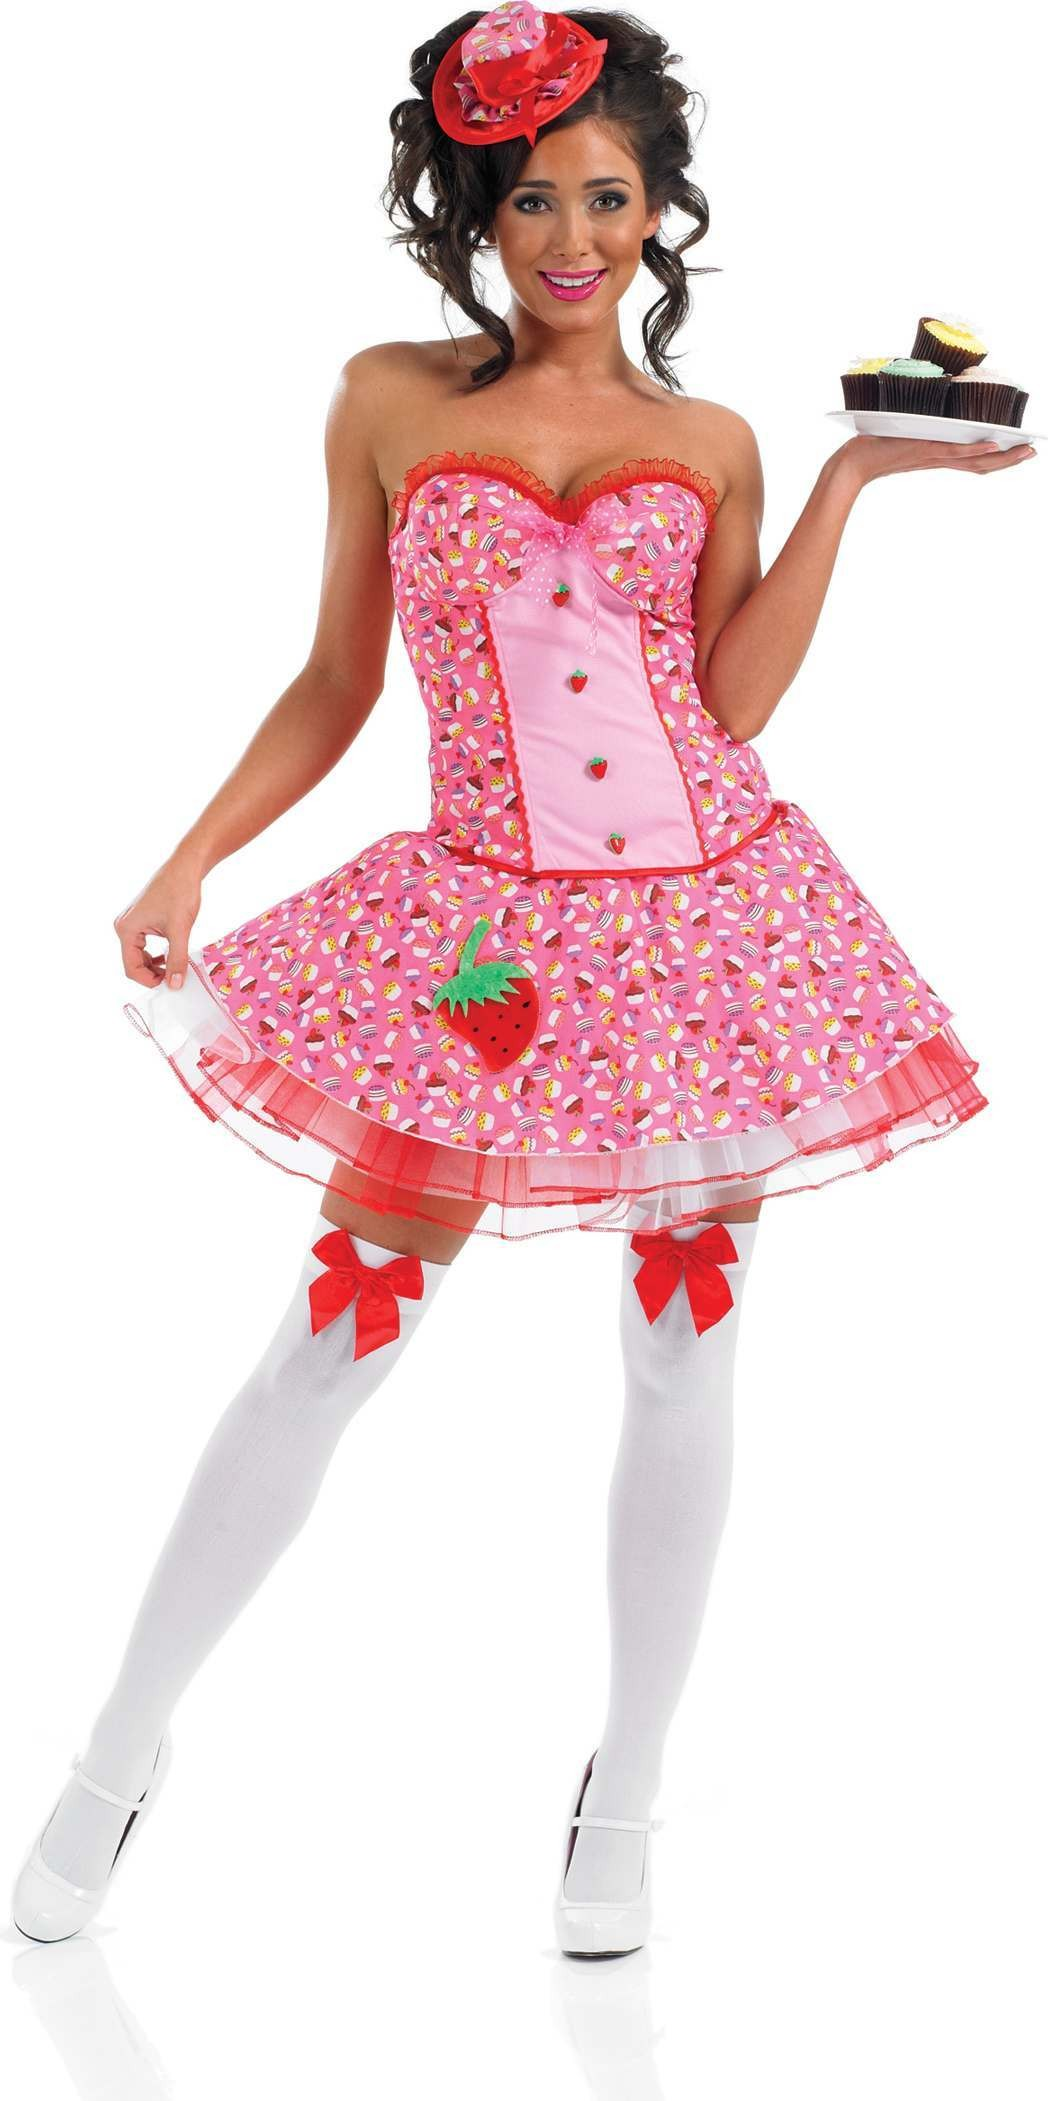 Cup Cake Girl Fancy Dress Costume